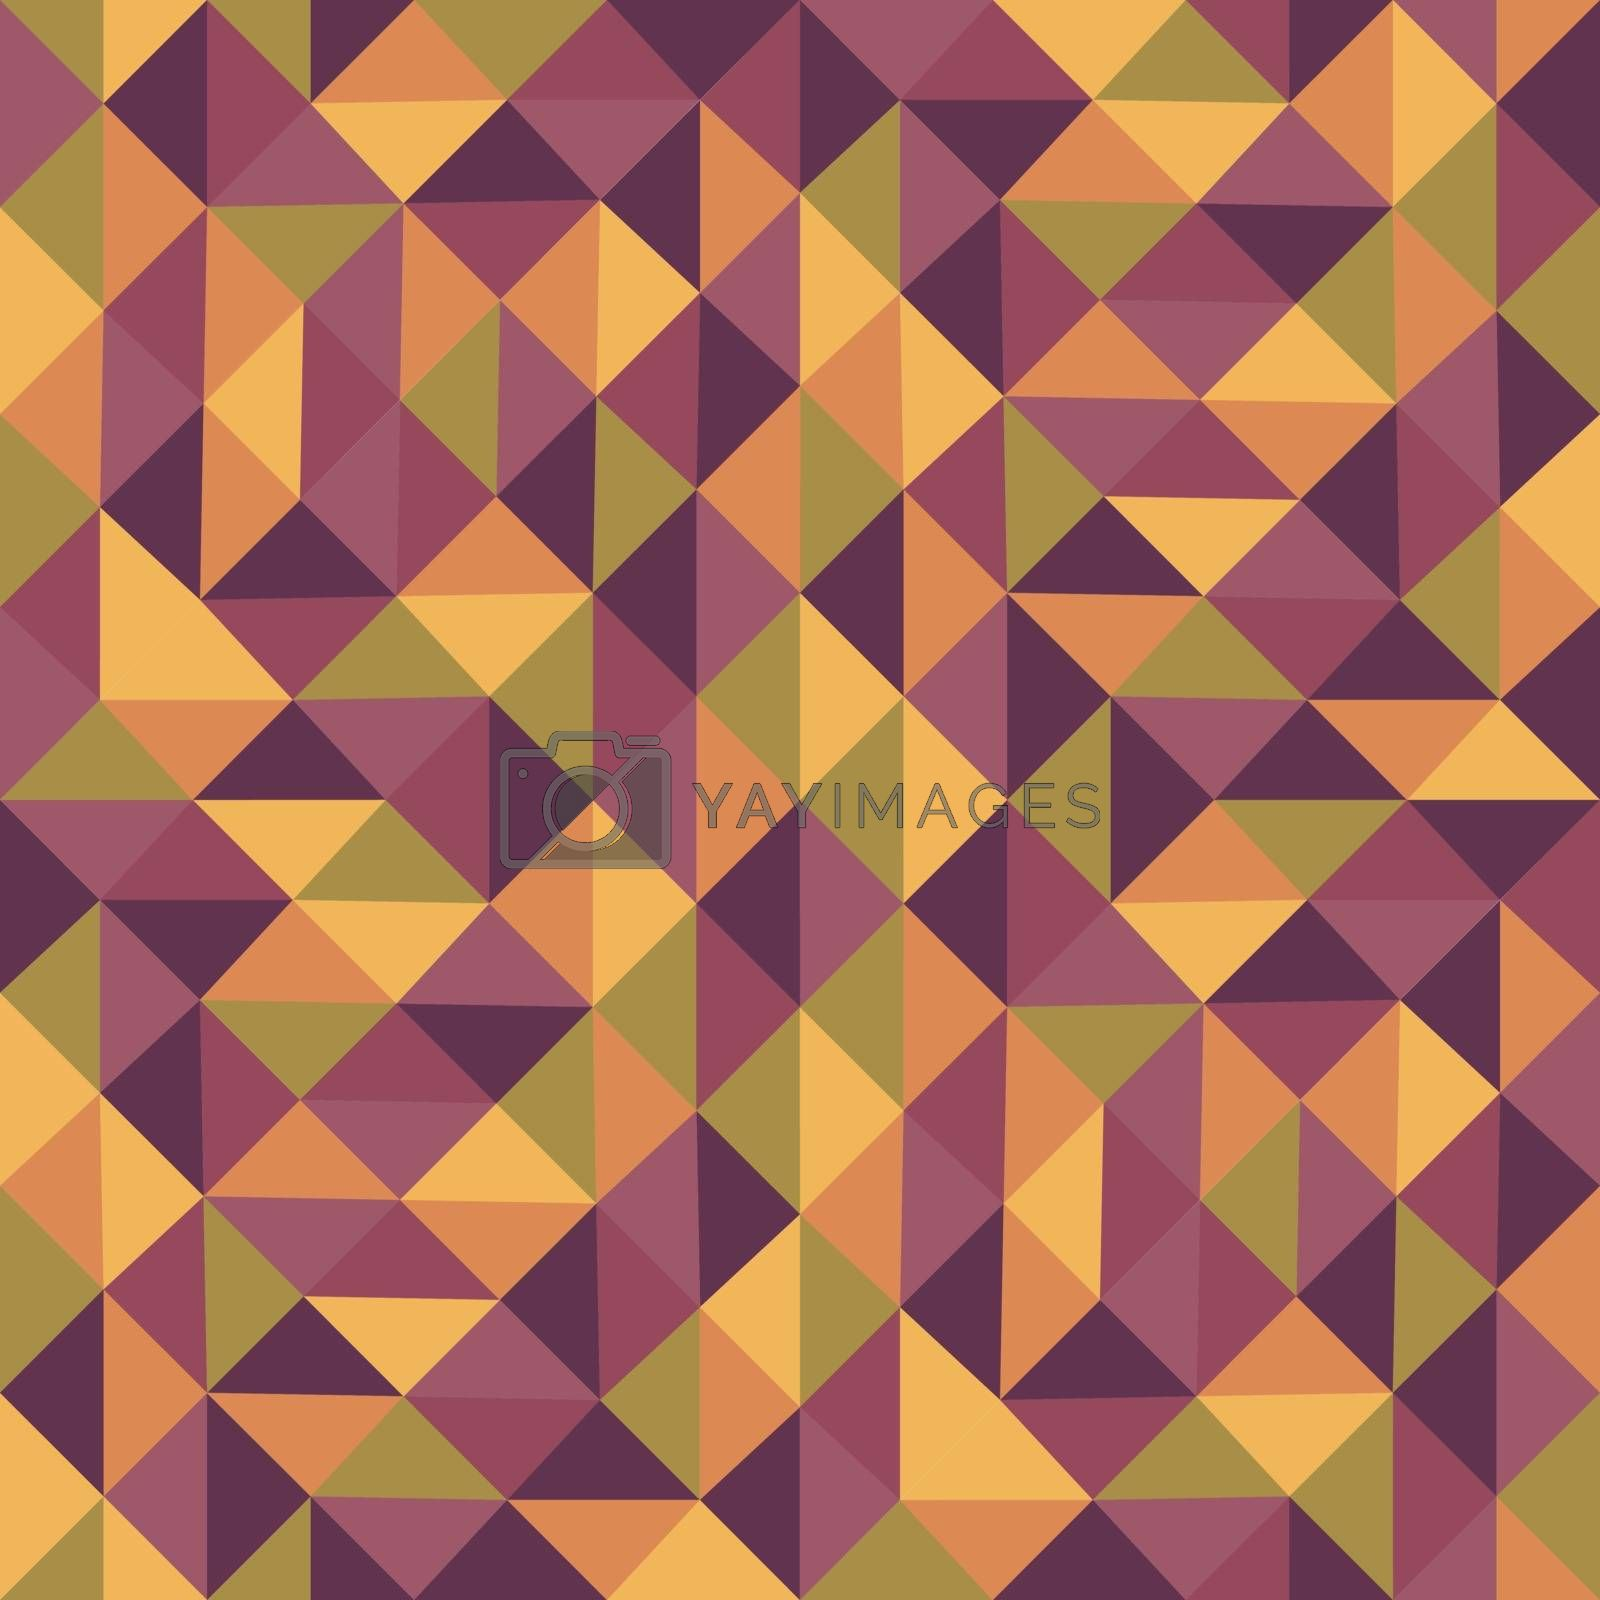 Geometric triangles background. Mosaic. Abstract vector illustration. Can be used for wallpaper, web page background, web banners.